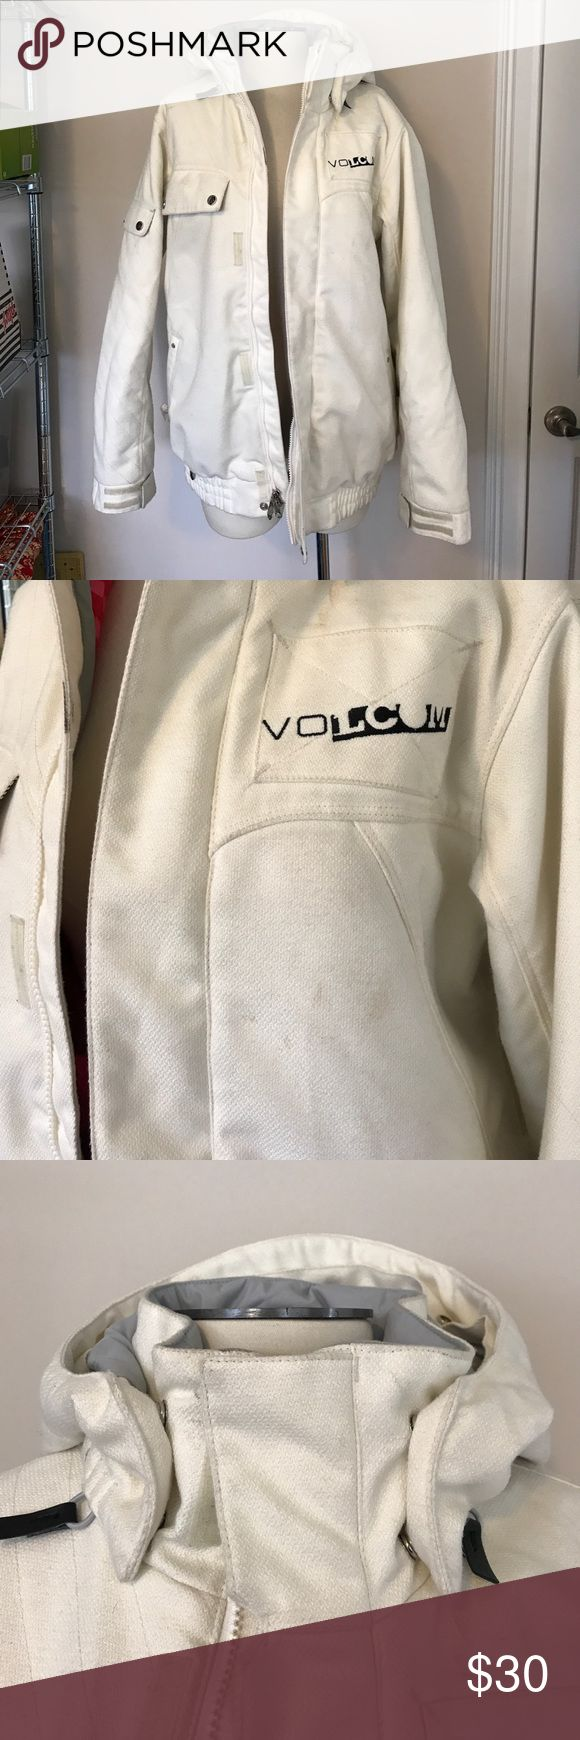 Volcom Snowboard Jacket Great winter and snowboard jacket. Does have some stains and marks but if you're looking for a really good snowboard jacket for cheap, this is killer!! No rips or tears, still has powder skirt as well. Missing fur for the hood. Volcom Jackets & Coats Puffers